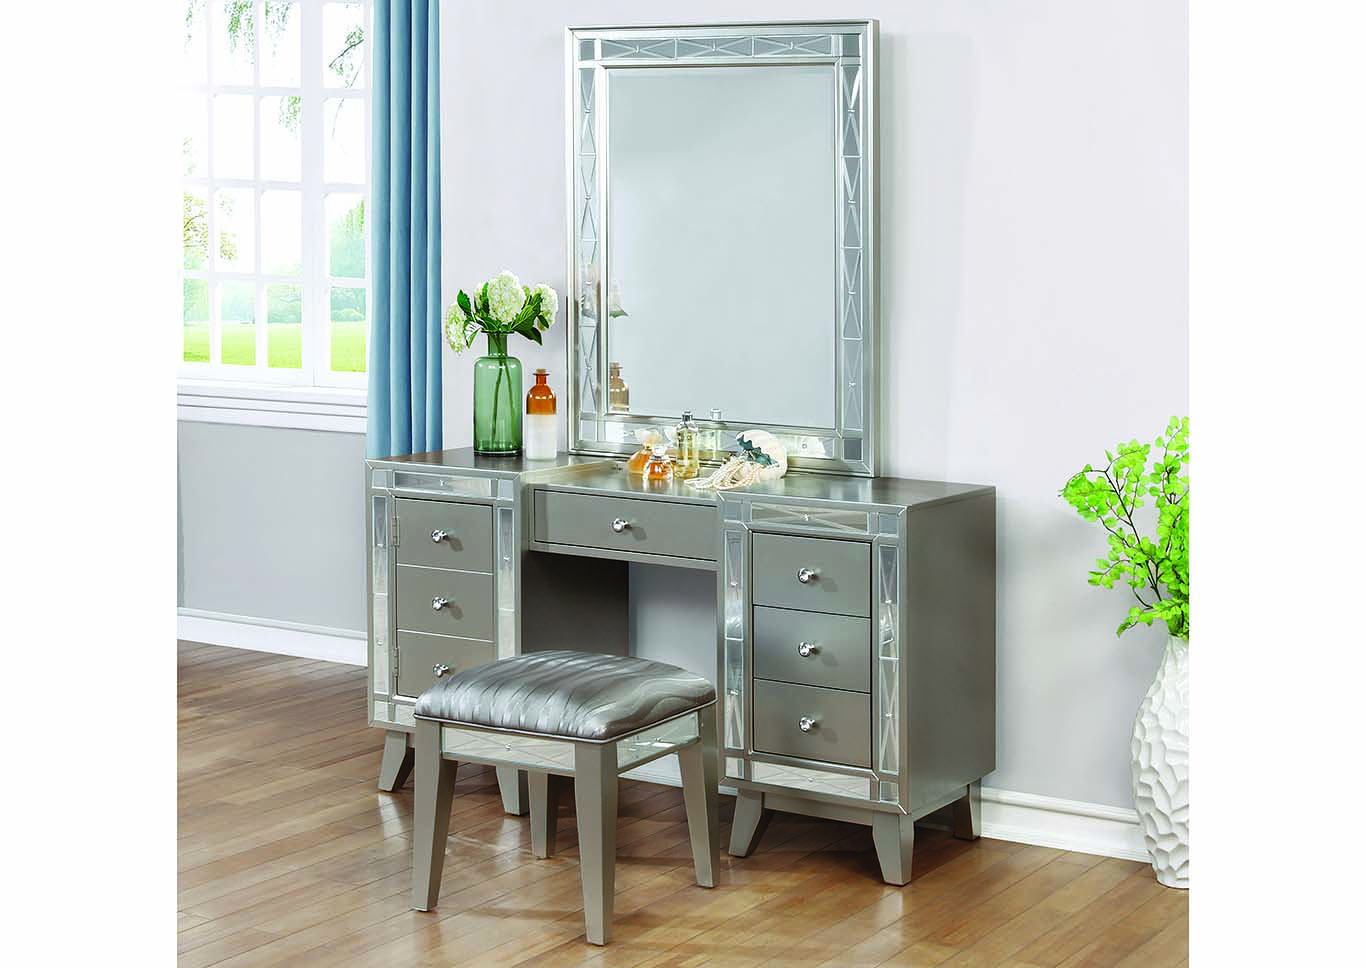 Leighton Metallic Mercury Vanity Desk, Stool and Mirror,ABF Coaster Furniture